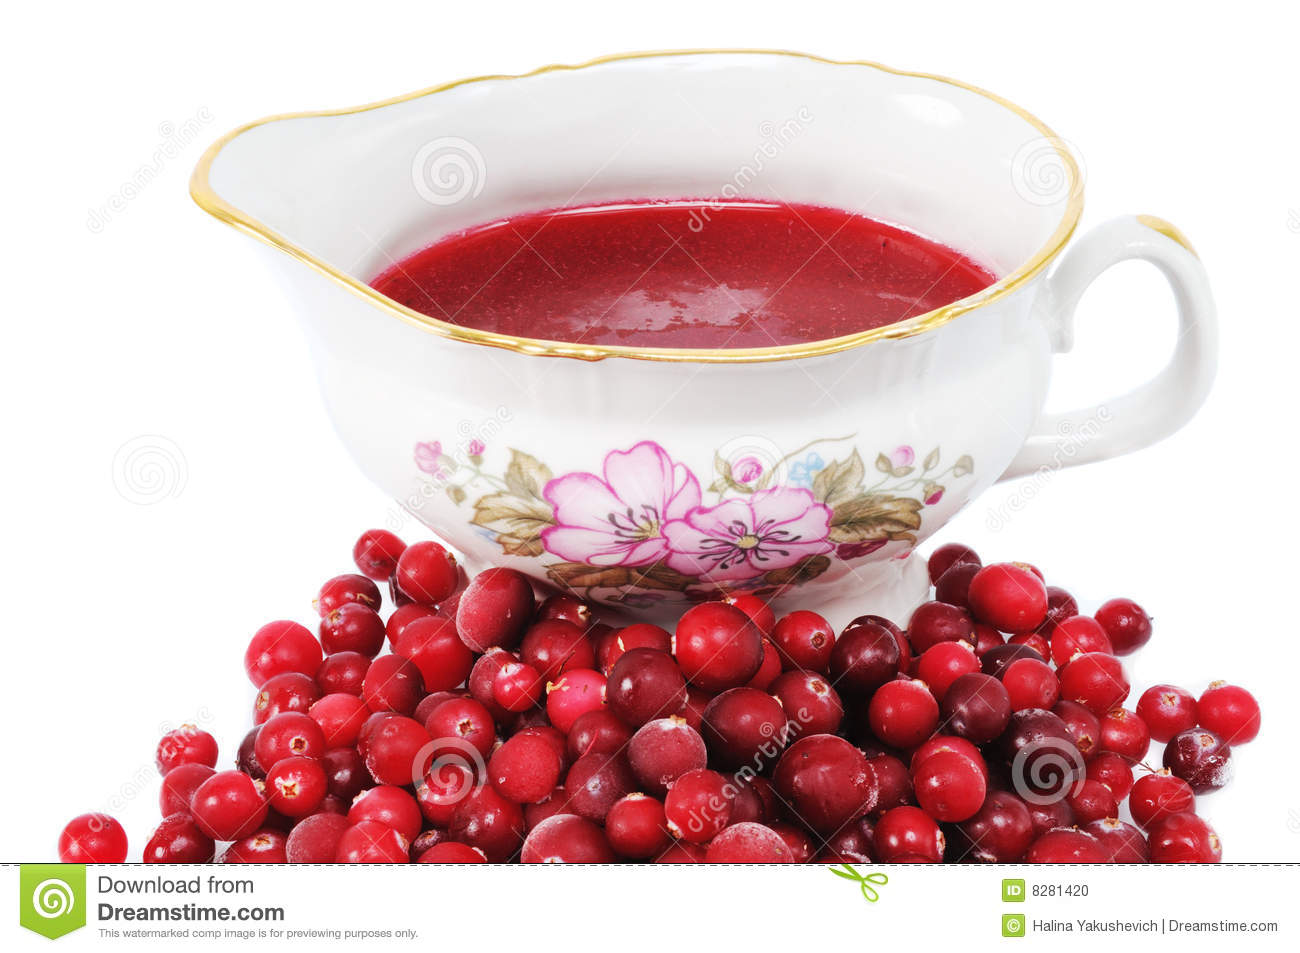 Cranberries kumberland